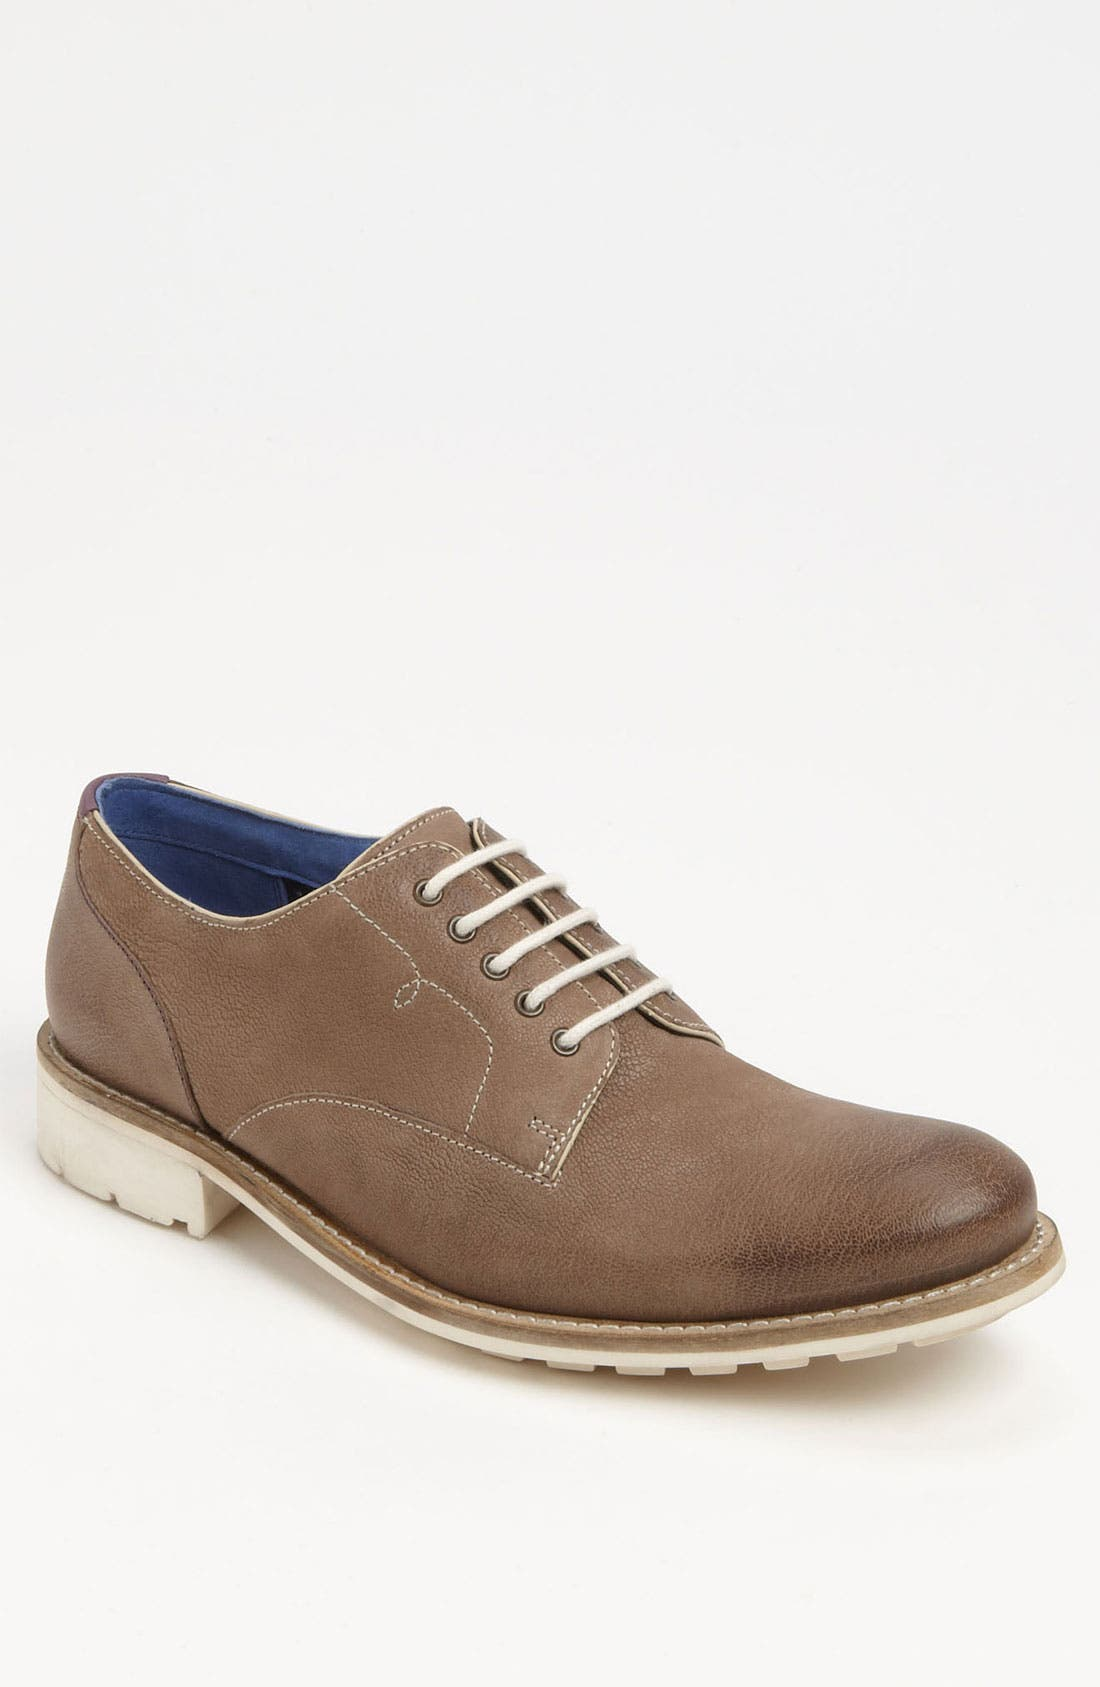 Main Image - Ted Baker London 'Tich' Buck Shoe